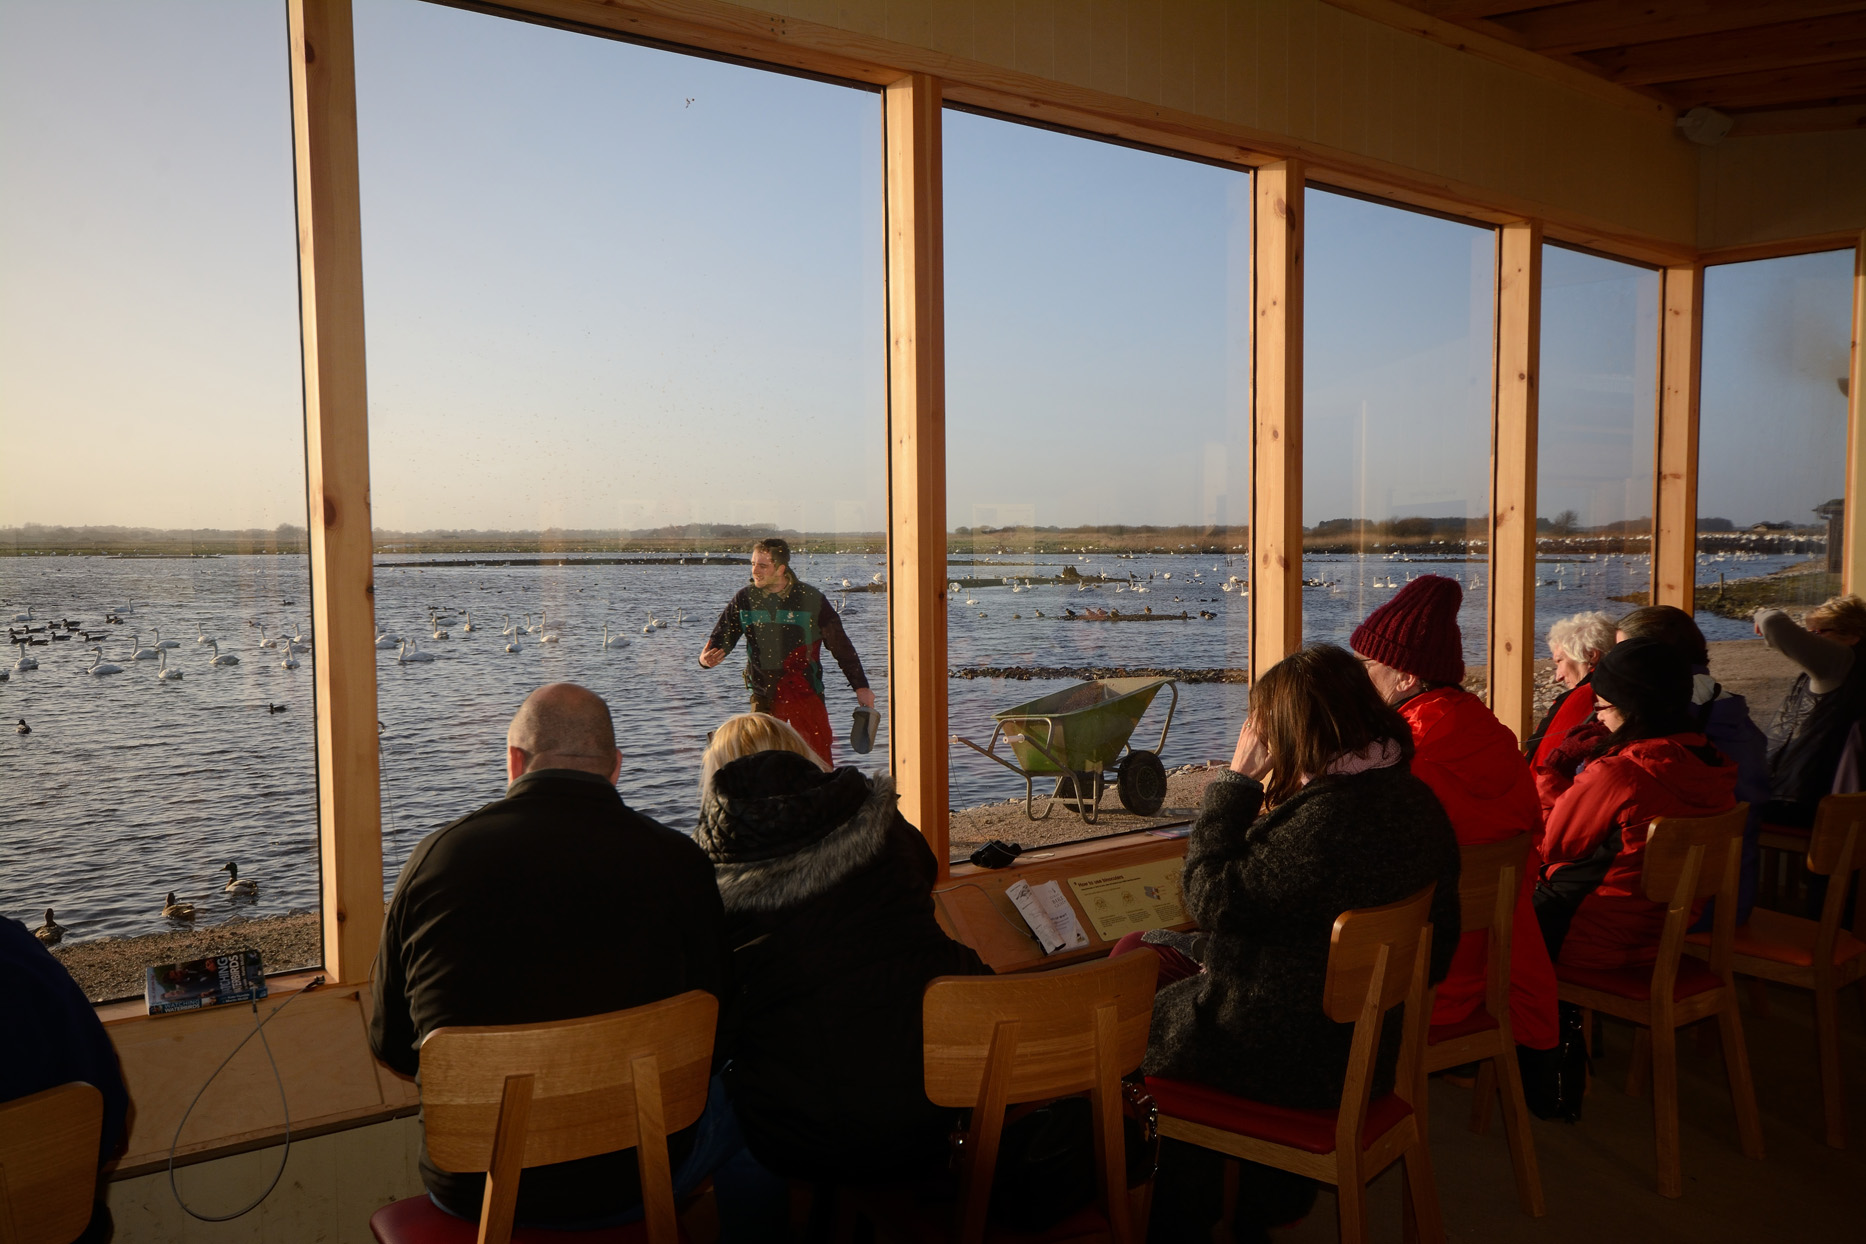 Winter is a great time of year to bring your group to WWT Martin Mere Wetland Centre.        Martin Mere offers unforgettable days out where your group can take it easy while getting close to fantastic wildlife. ThereÂ's something for everyone from hand feeding rare birds to spotting kingfishers,...